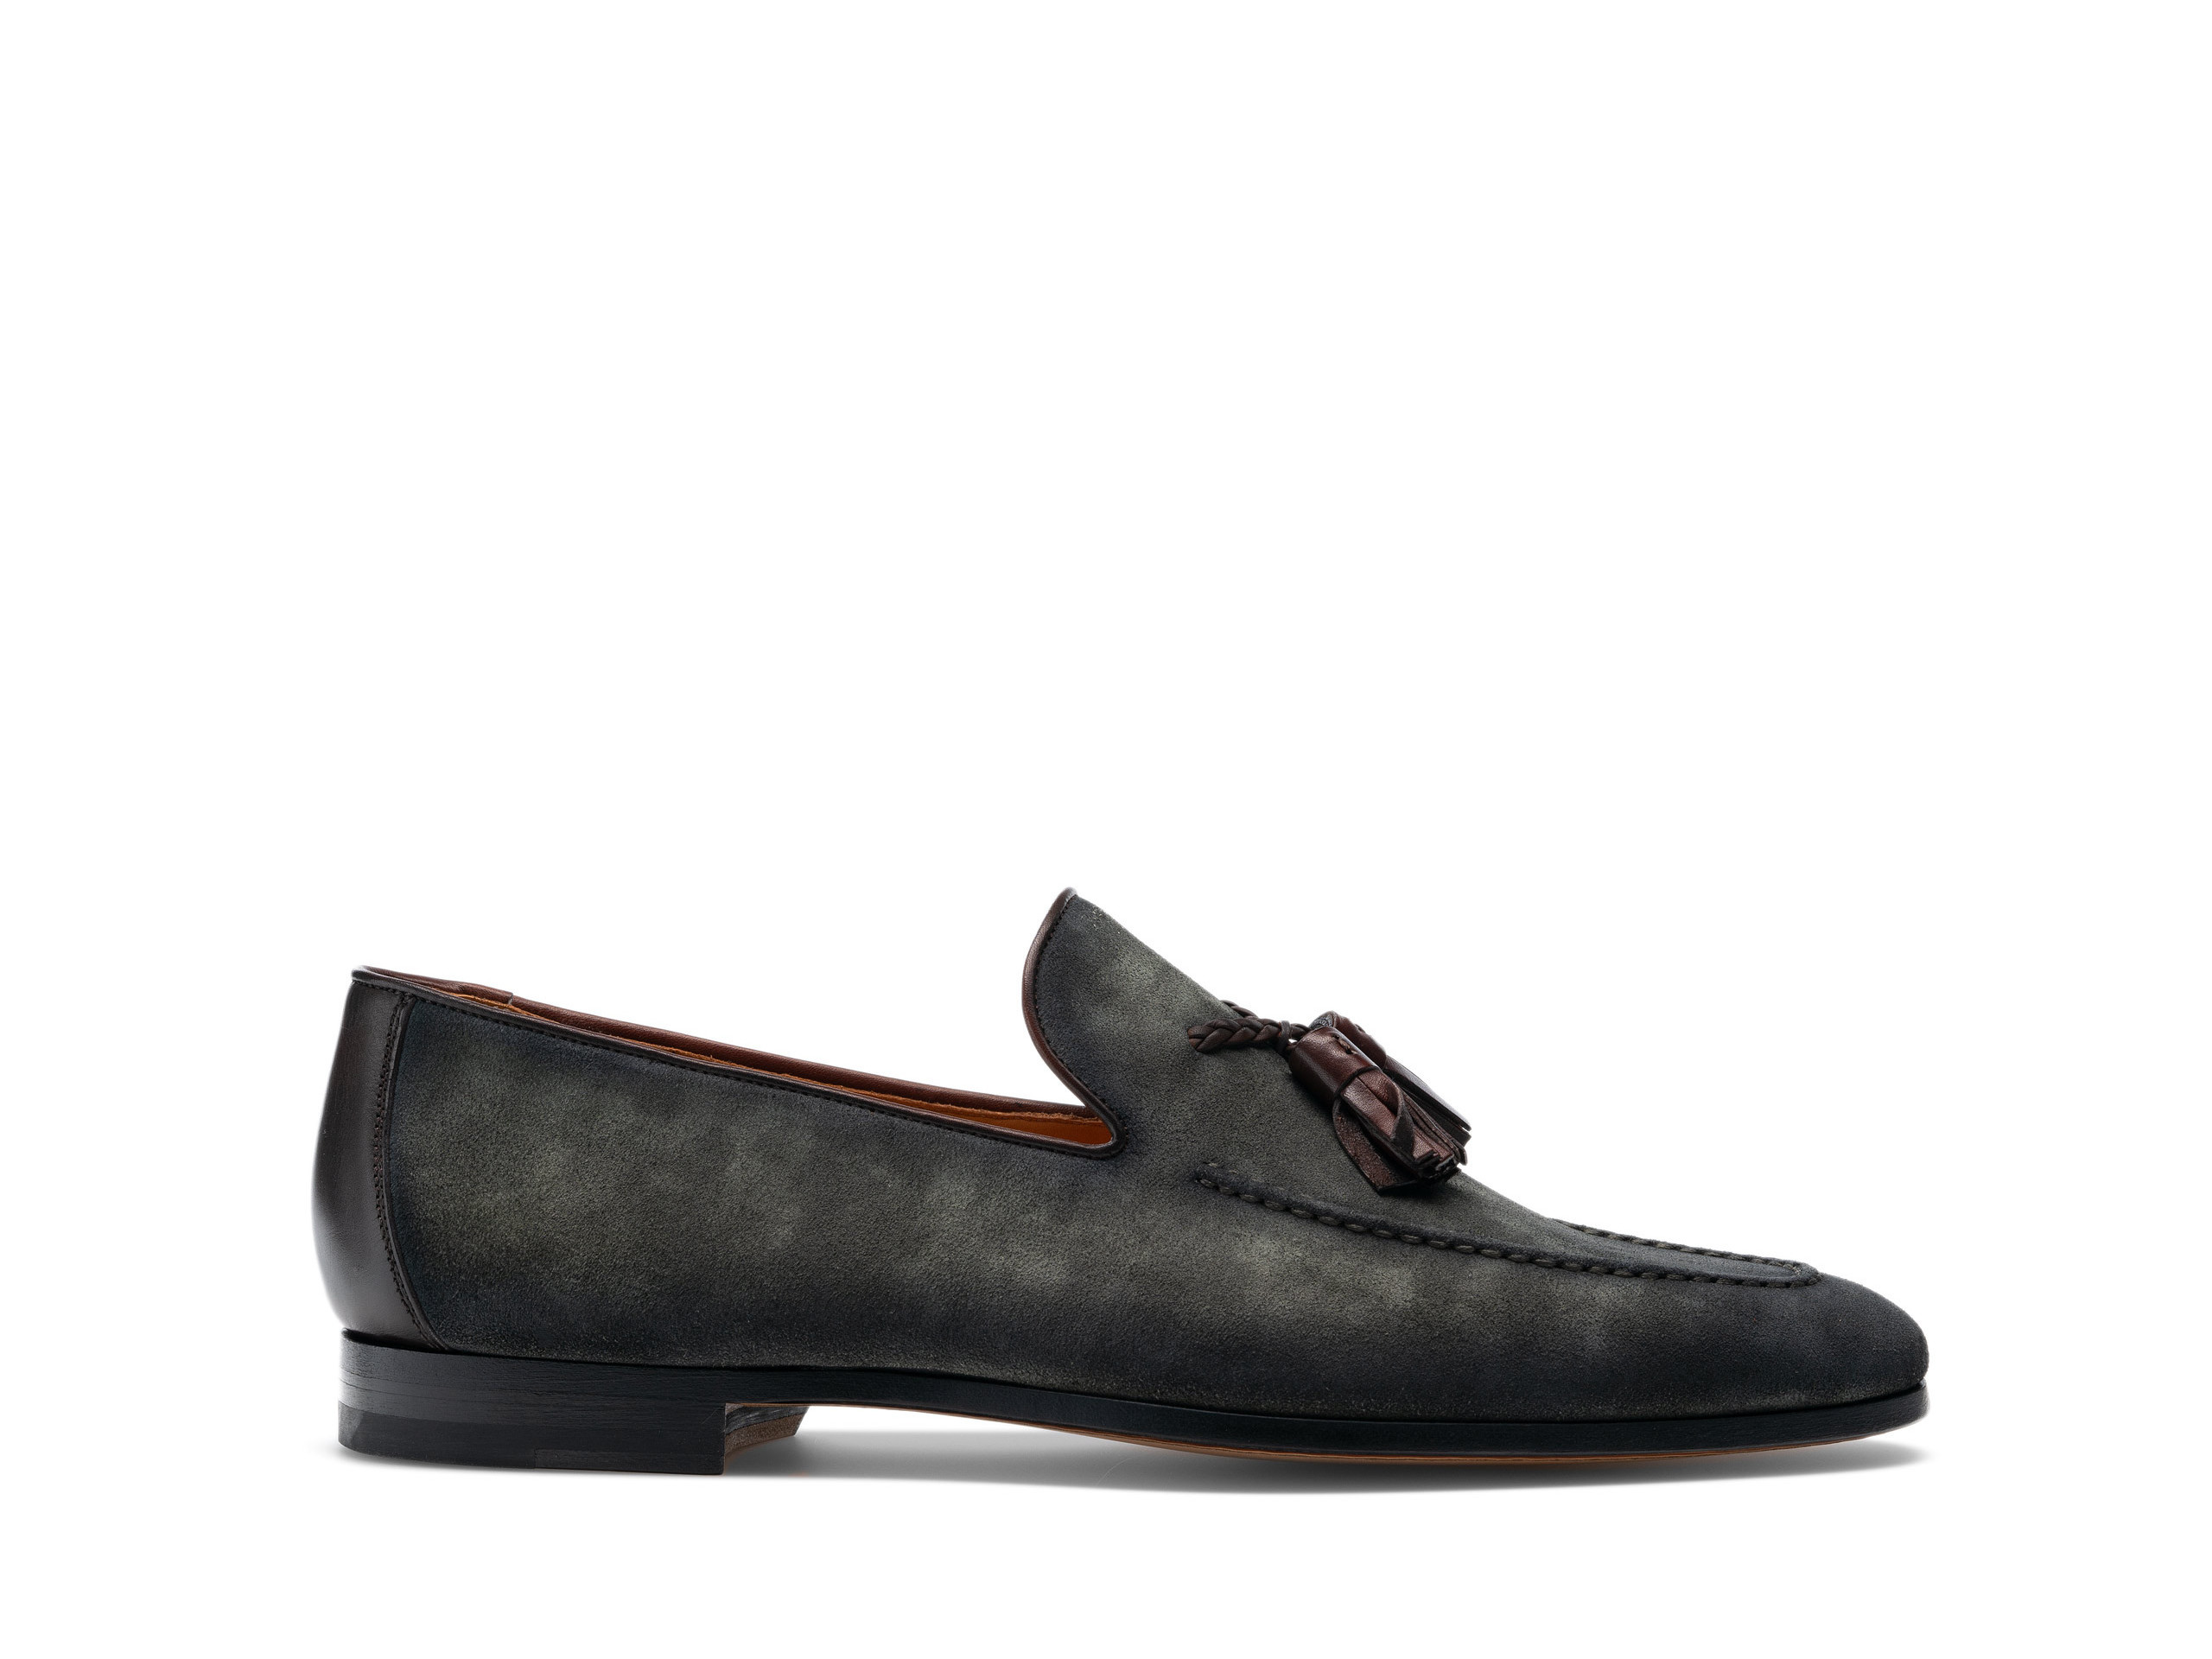 Side view of the Magnanni Salares Musgo Suede Men's Tassel Loafers